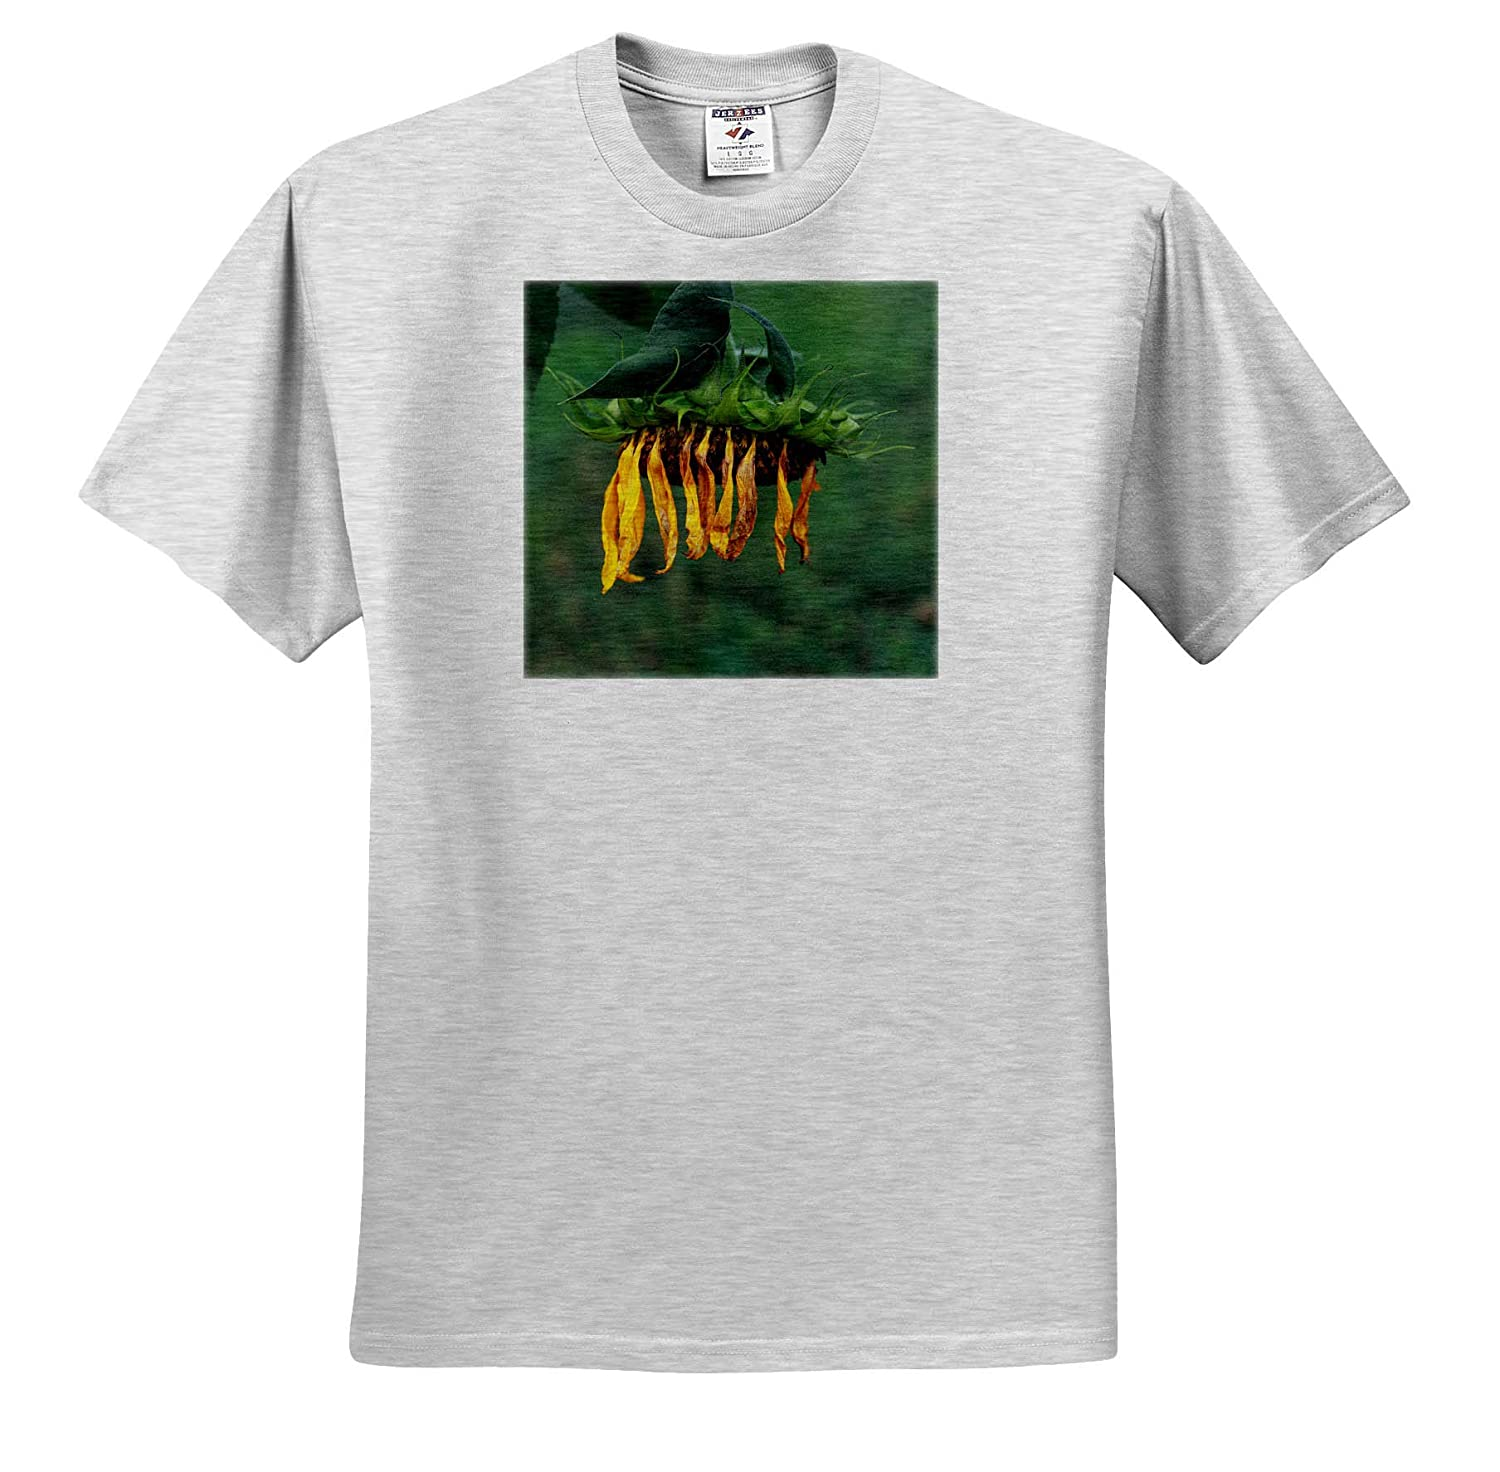 Flowers 3dRose Stamp City - Adult T-Shirt XL ts/_320182 Photograph of a Weeping Sunflower Too Tired to find The Sun